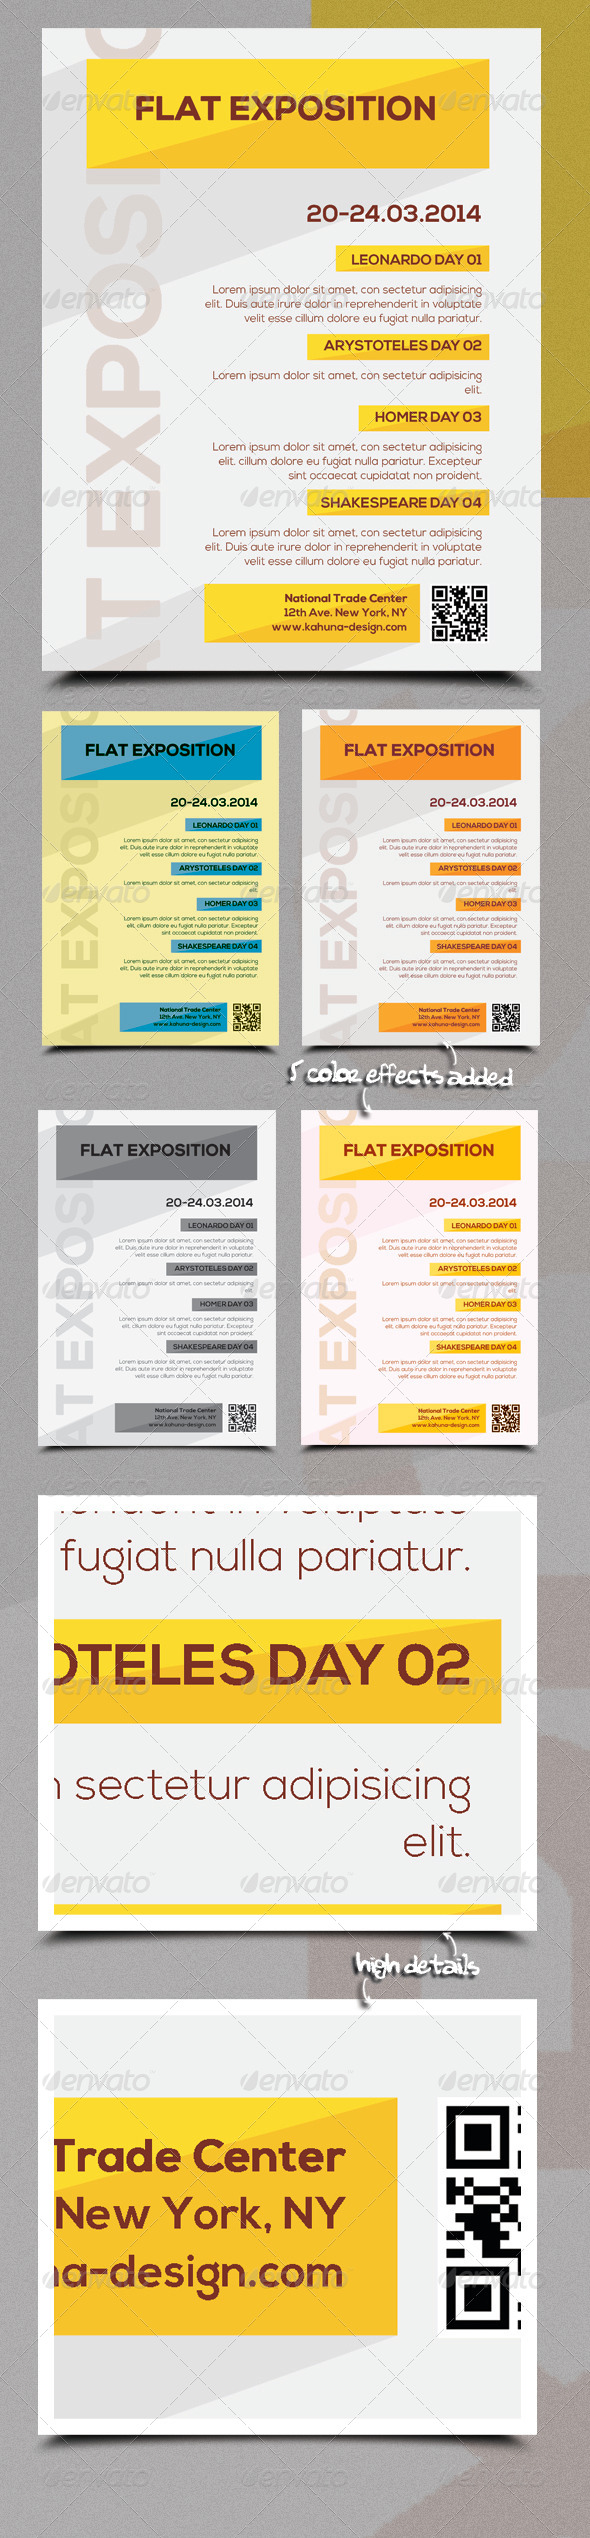 Flat Exposition Poster / Flyer - Flyers Print Templates